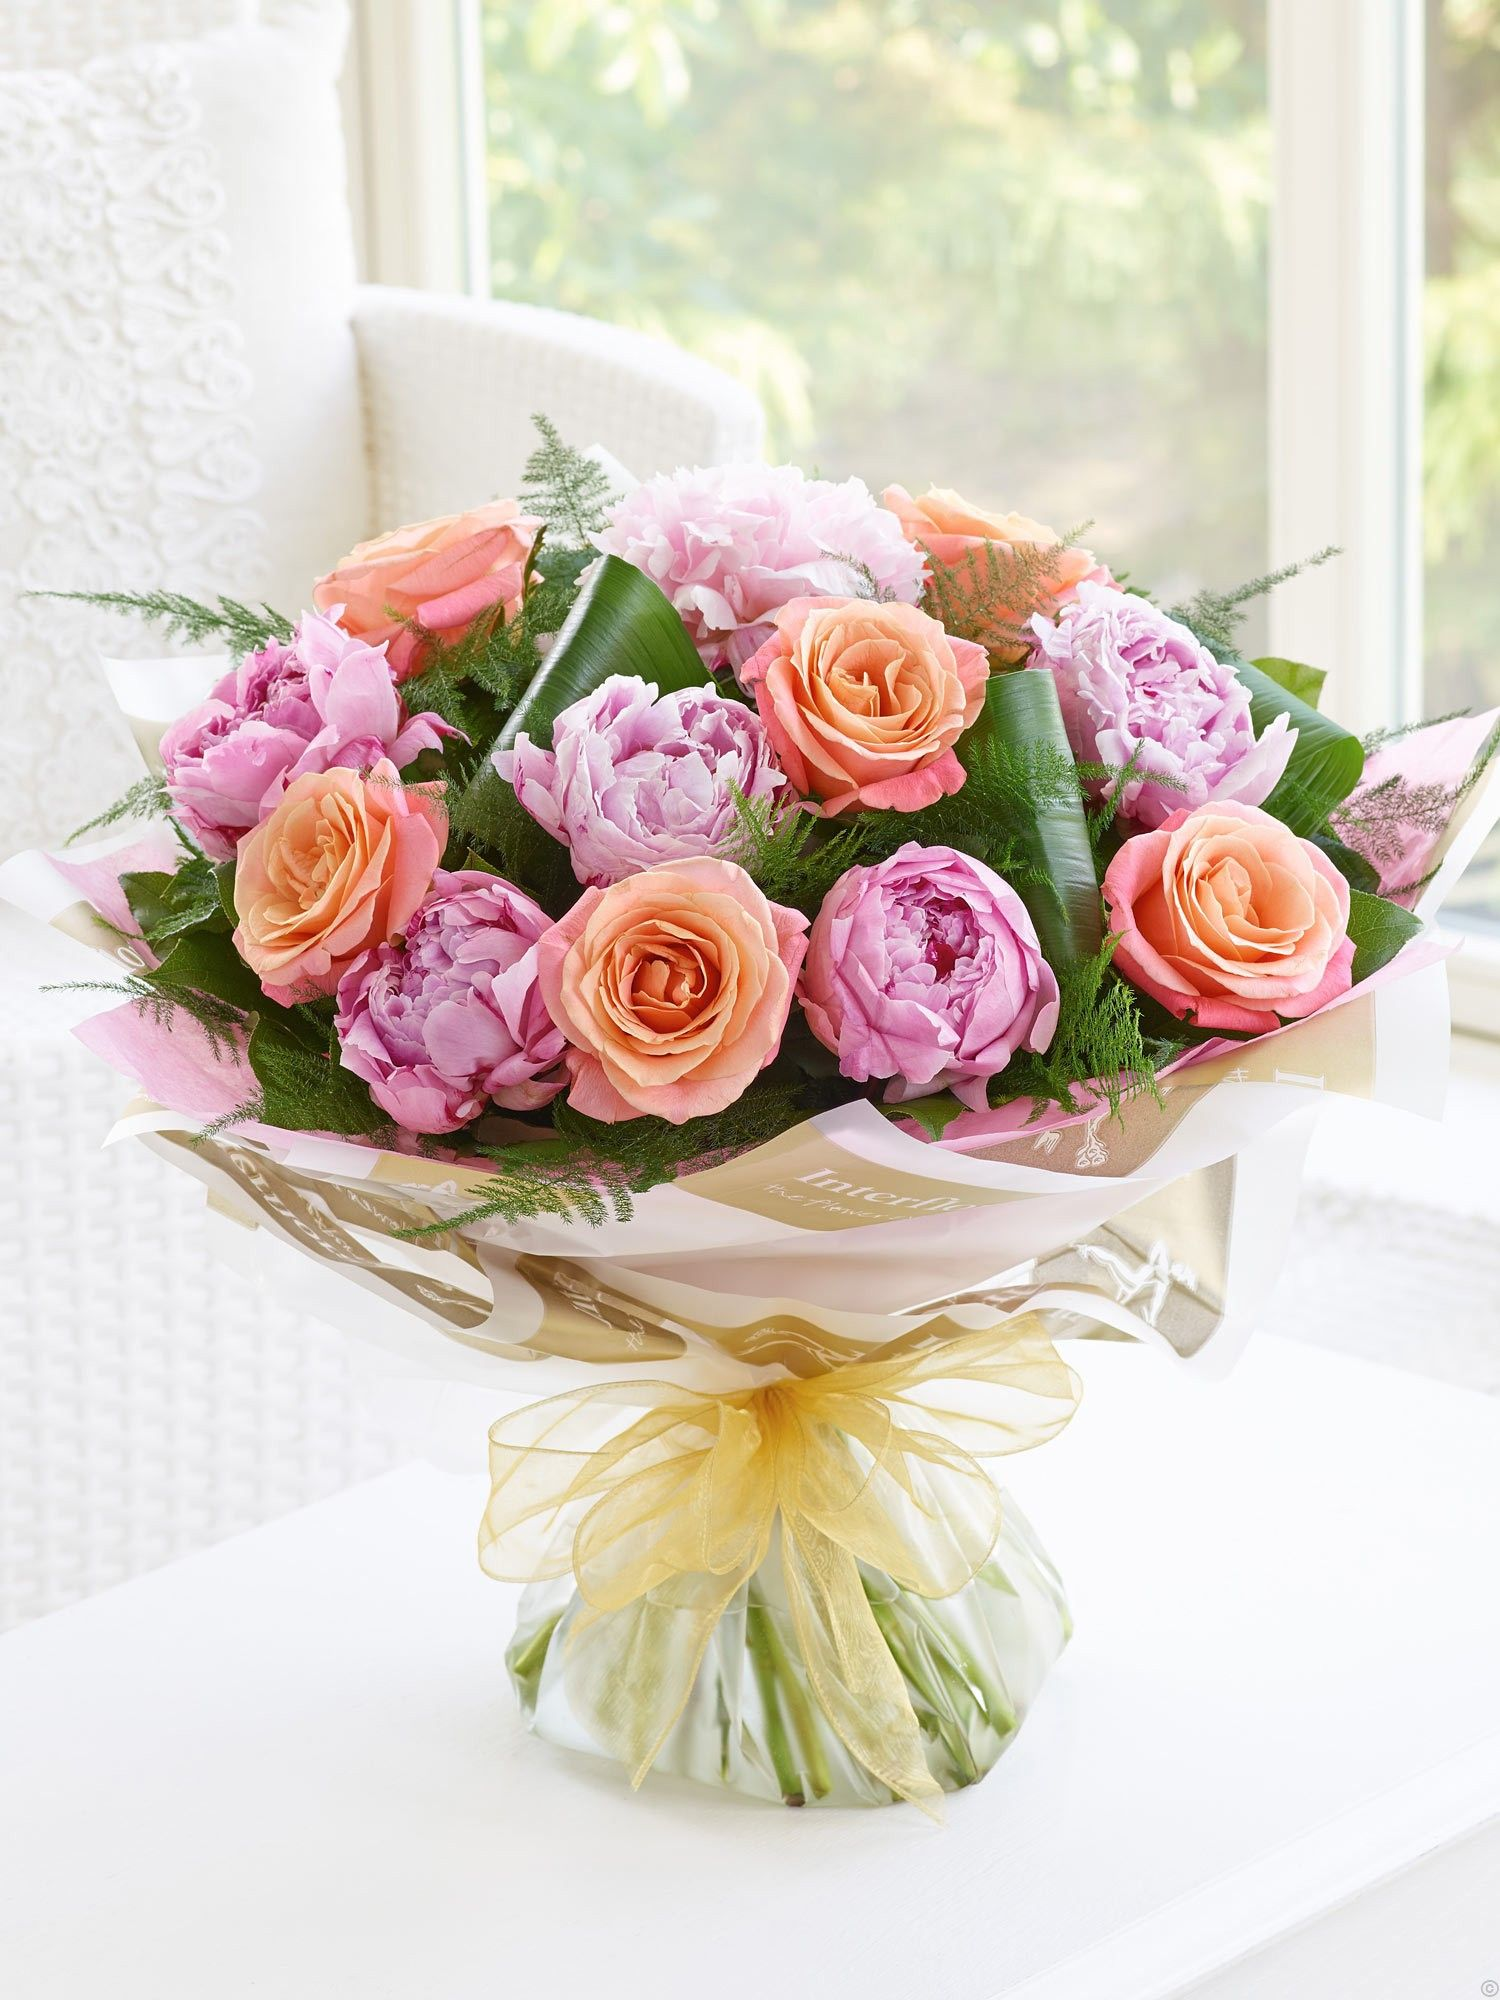 Roses and Peonies. Perfect summer flowers in this pink and